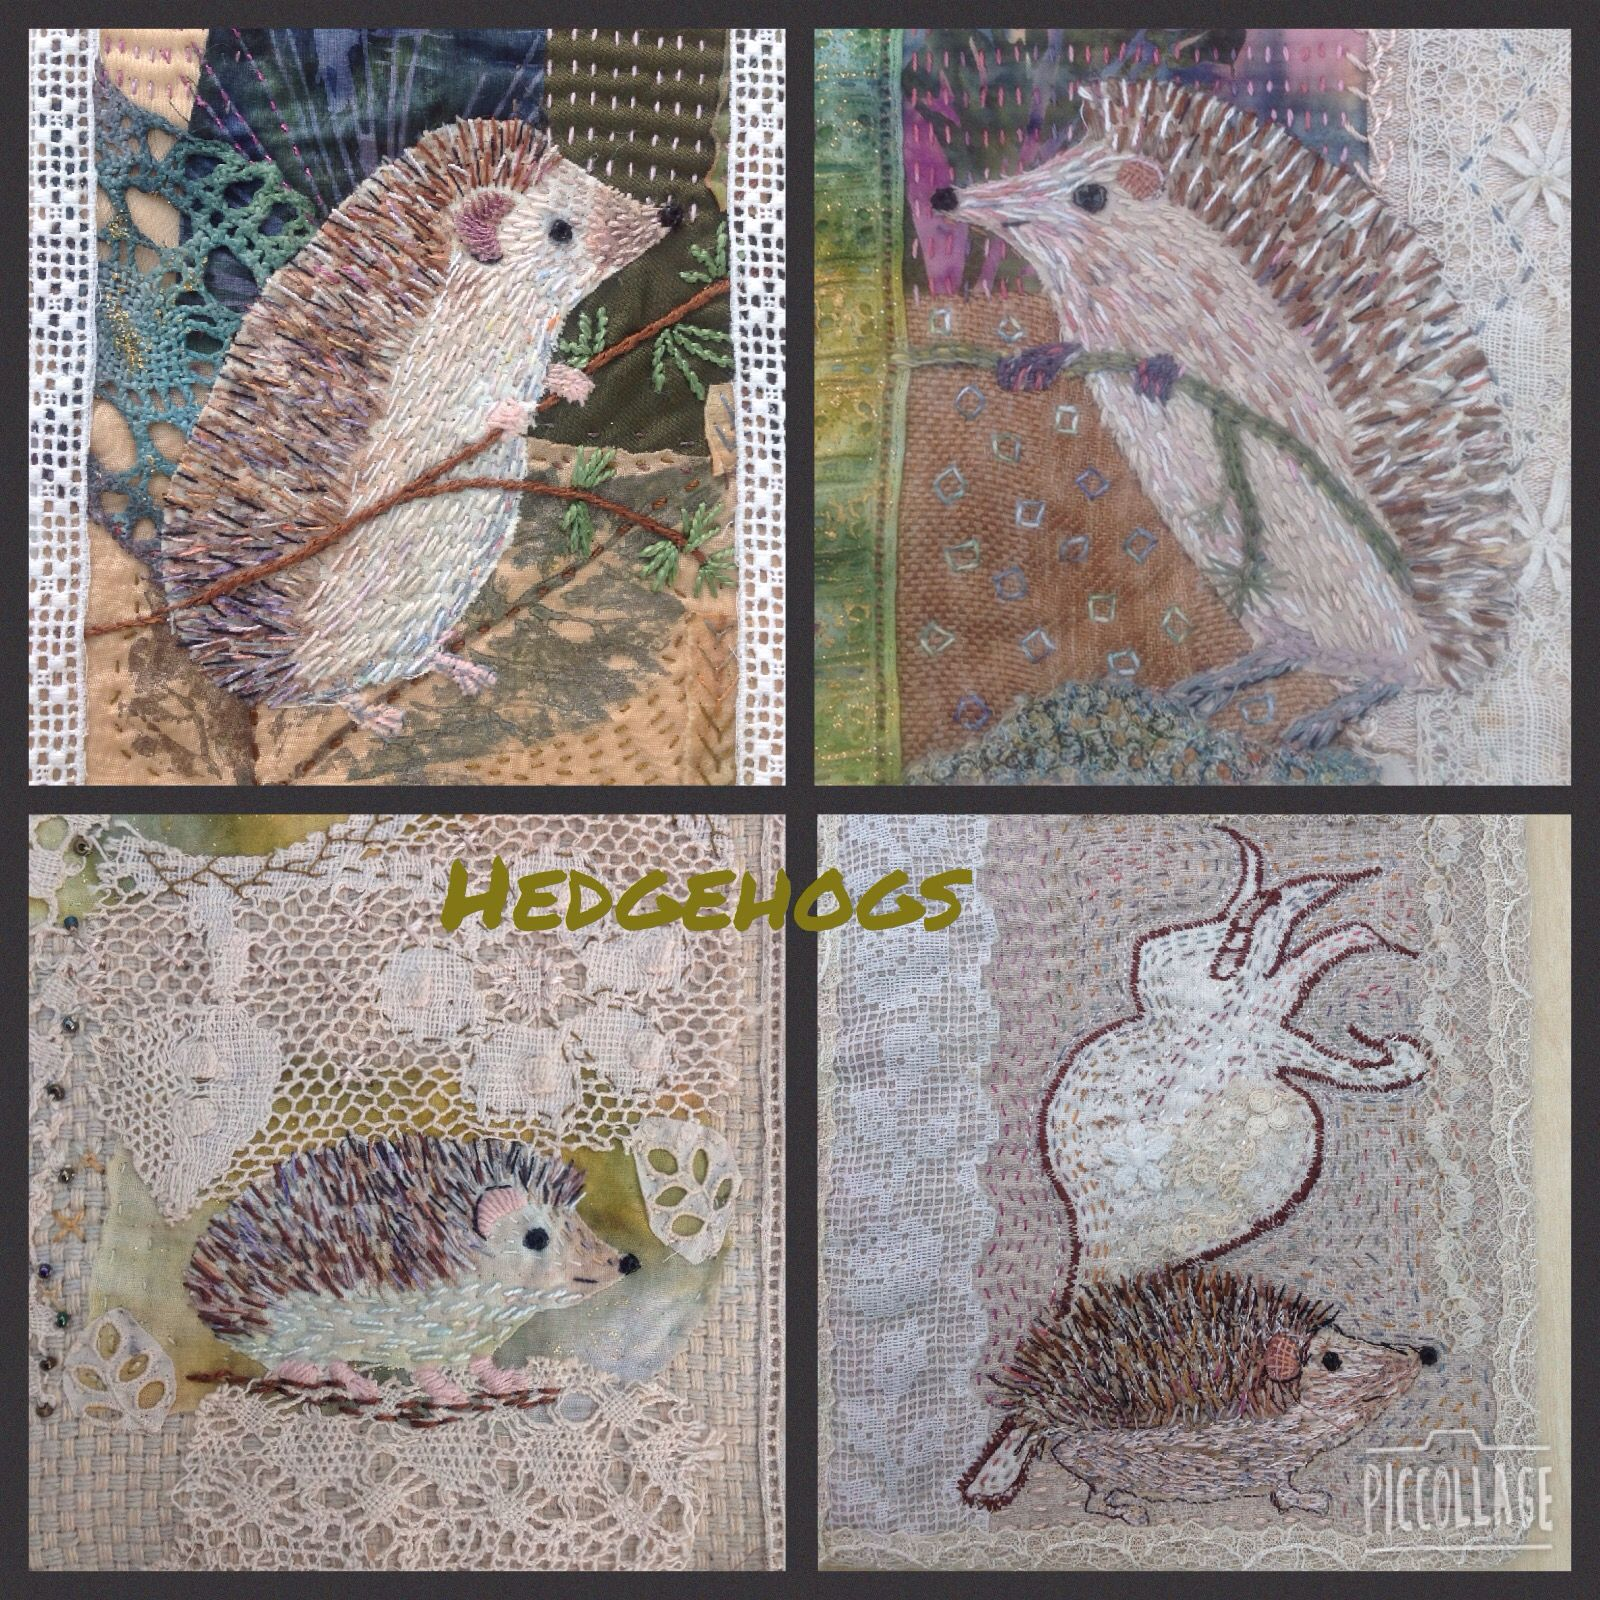 Stitched hedgehogs on vintage lace and dyed fabrics; great fun.Debbie Irving